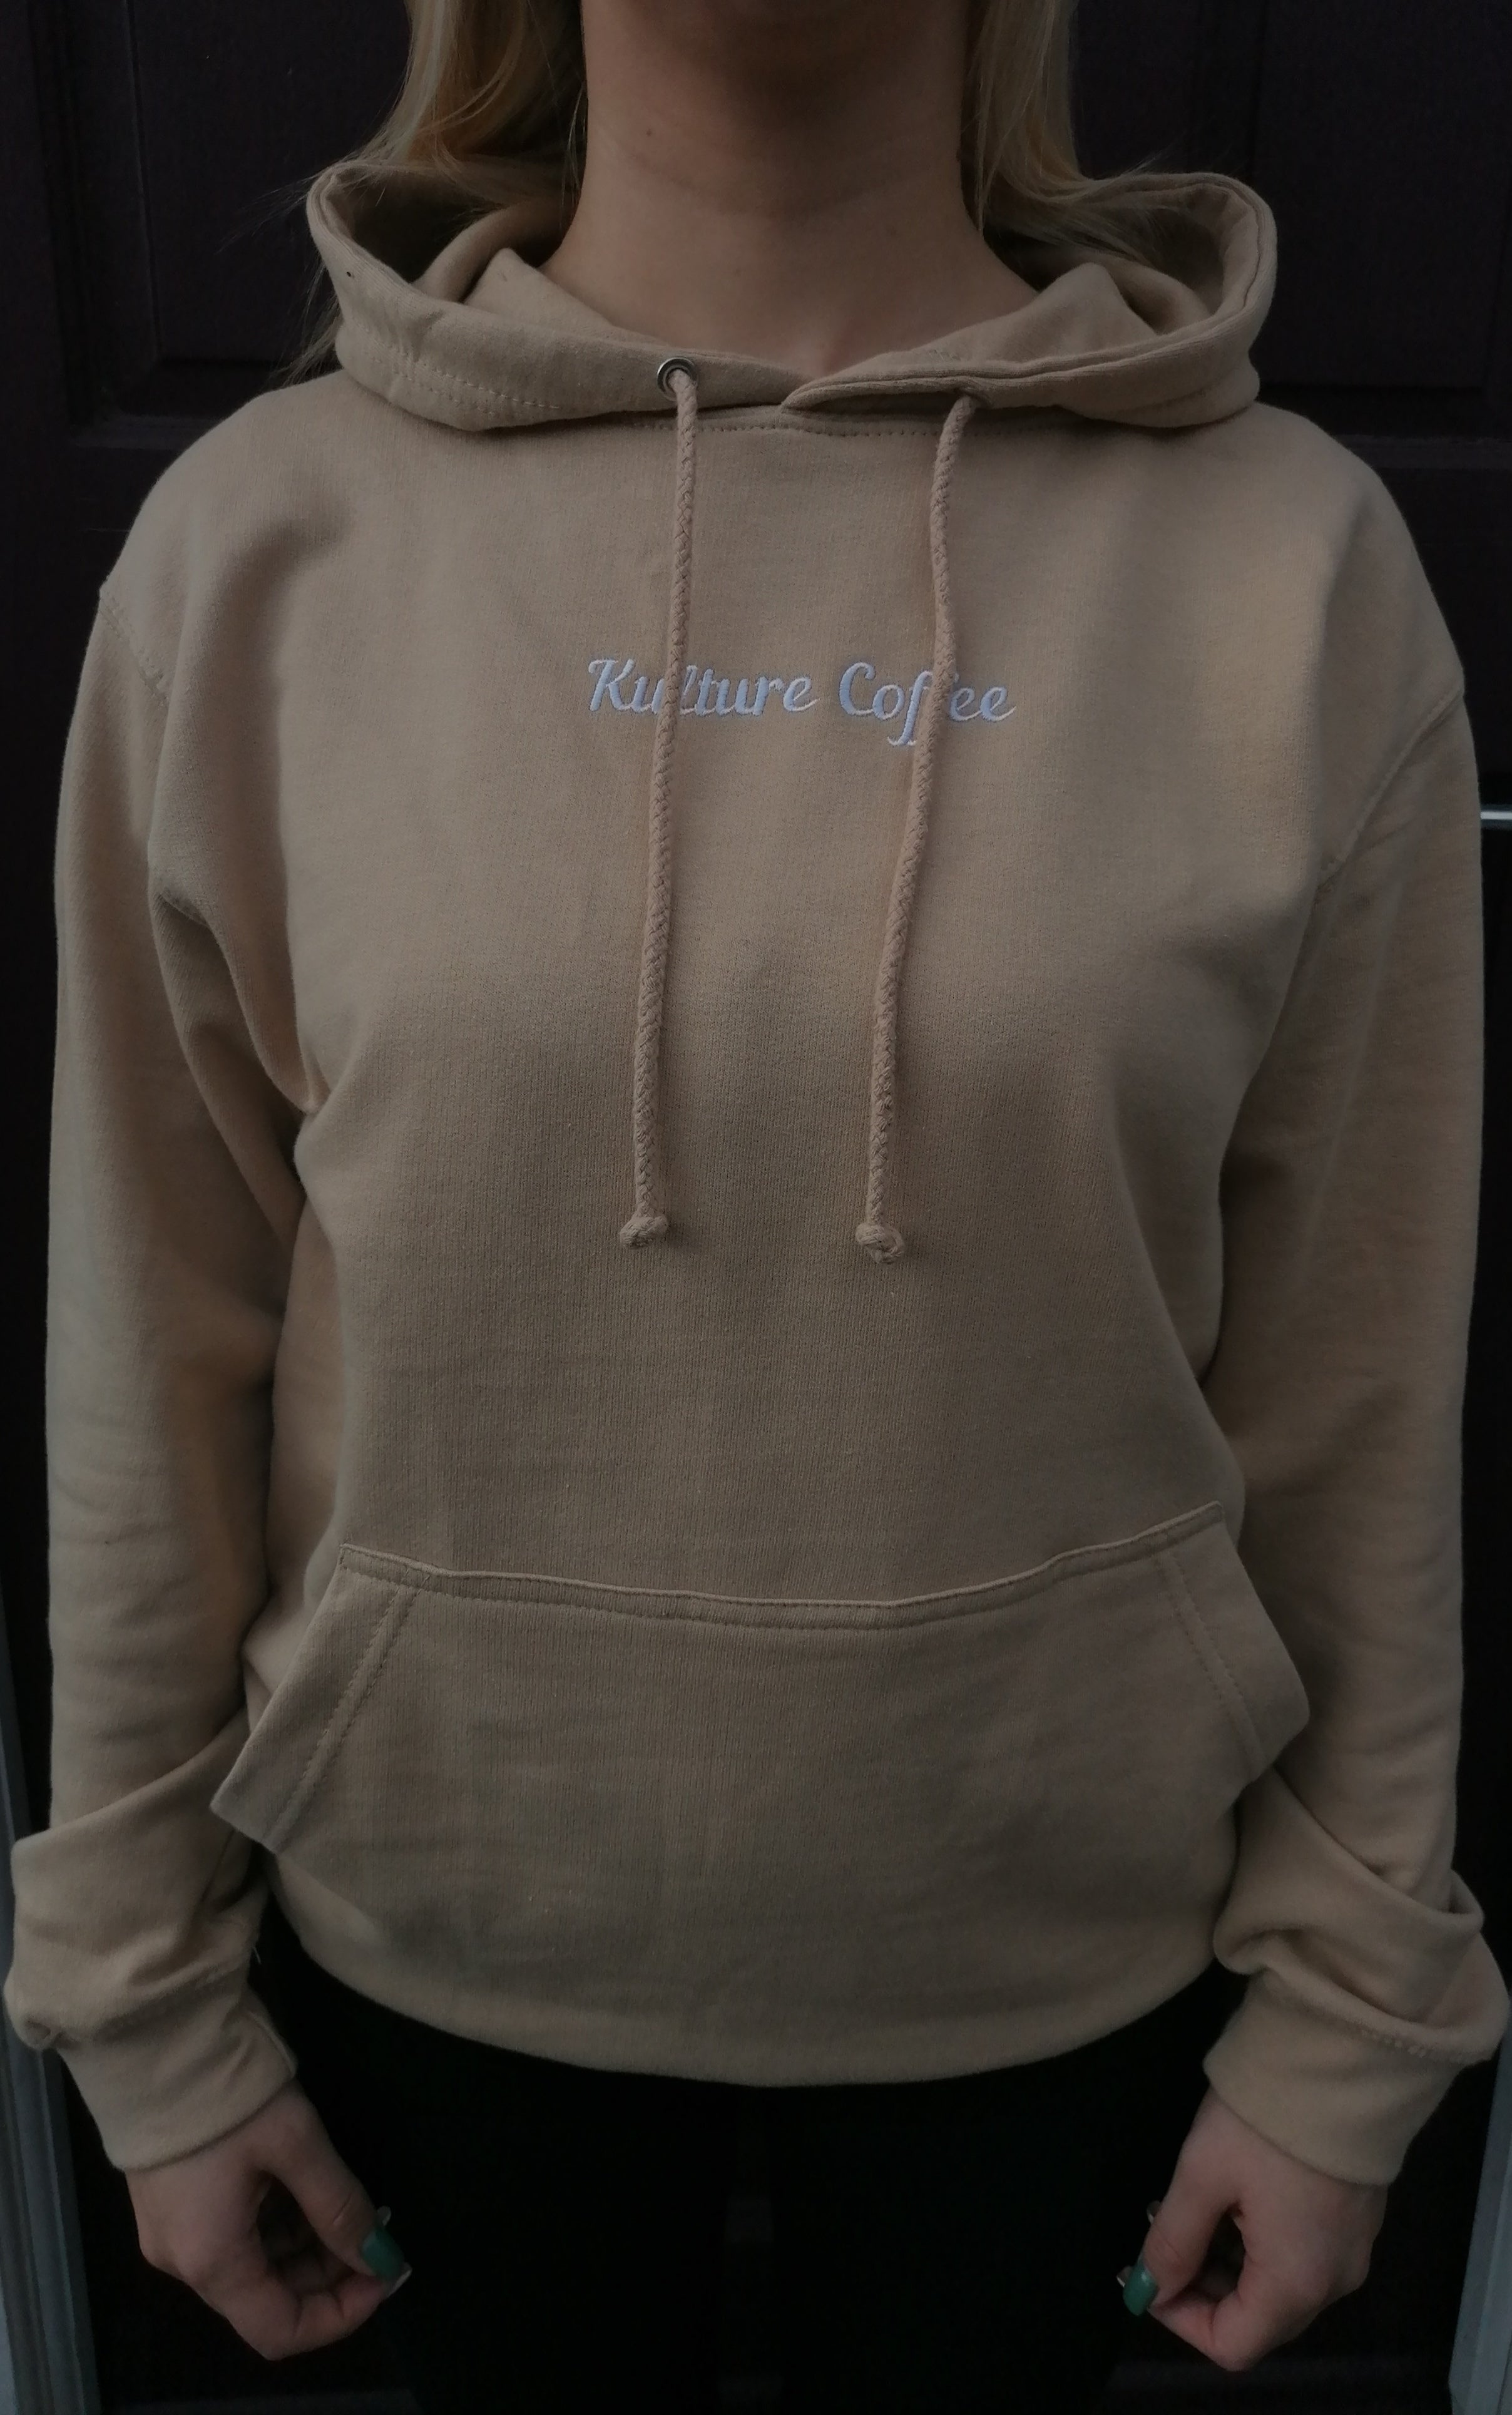 Kulture Coffee Embroidered Hoodie